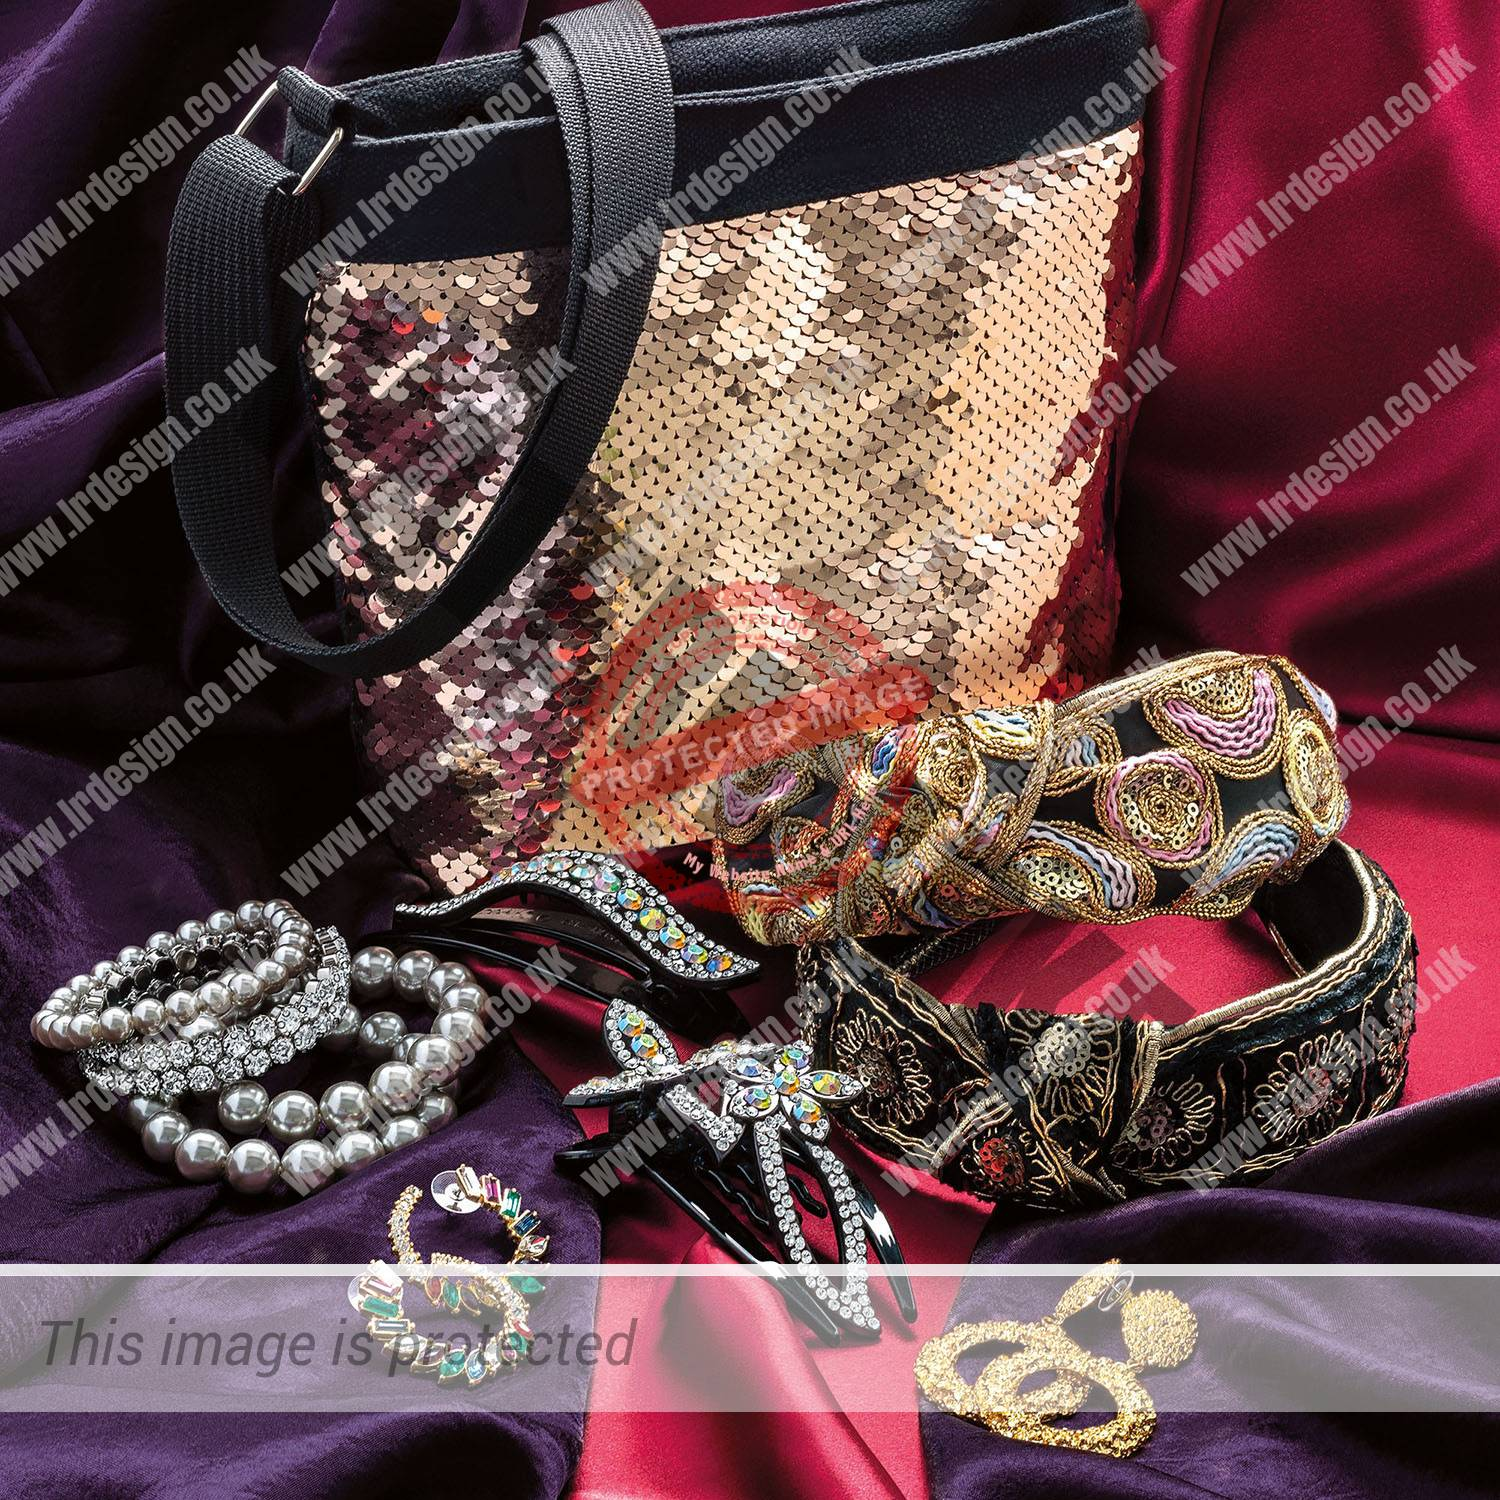 A collection of jewellery, hair accessories with sequin bag.